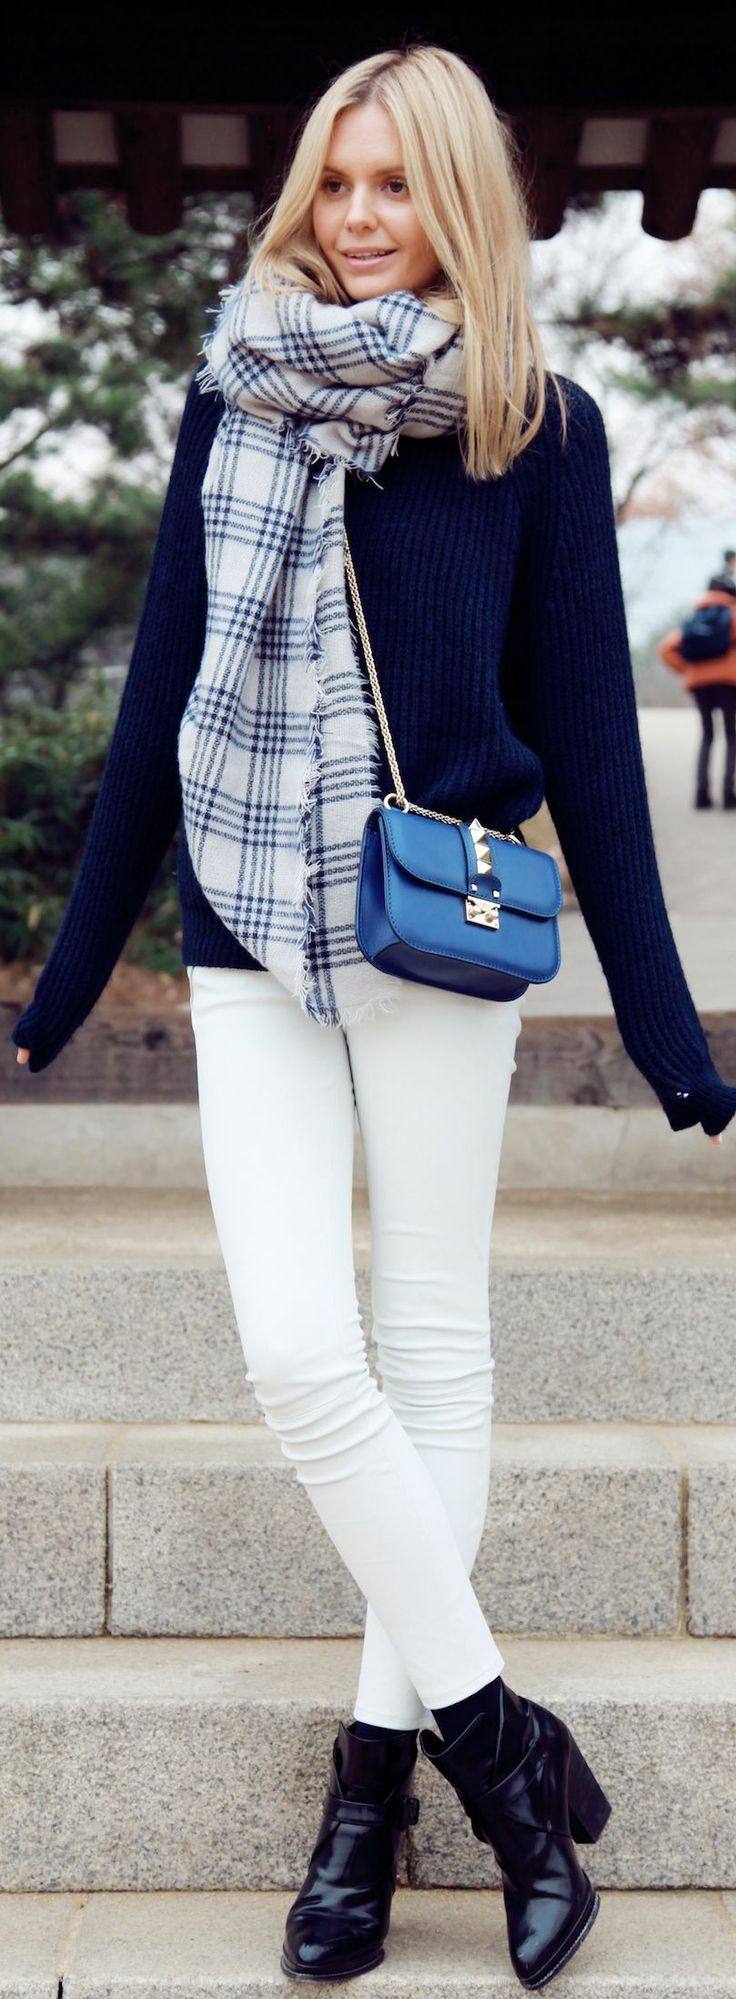 Best 25  Navy sweaters ideas on Pinterest | Navy clothing, Navy ...